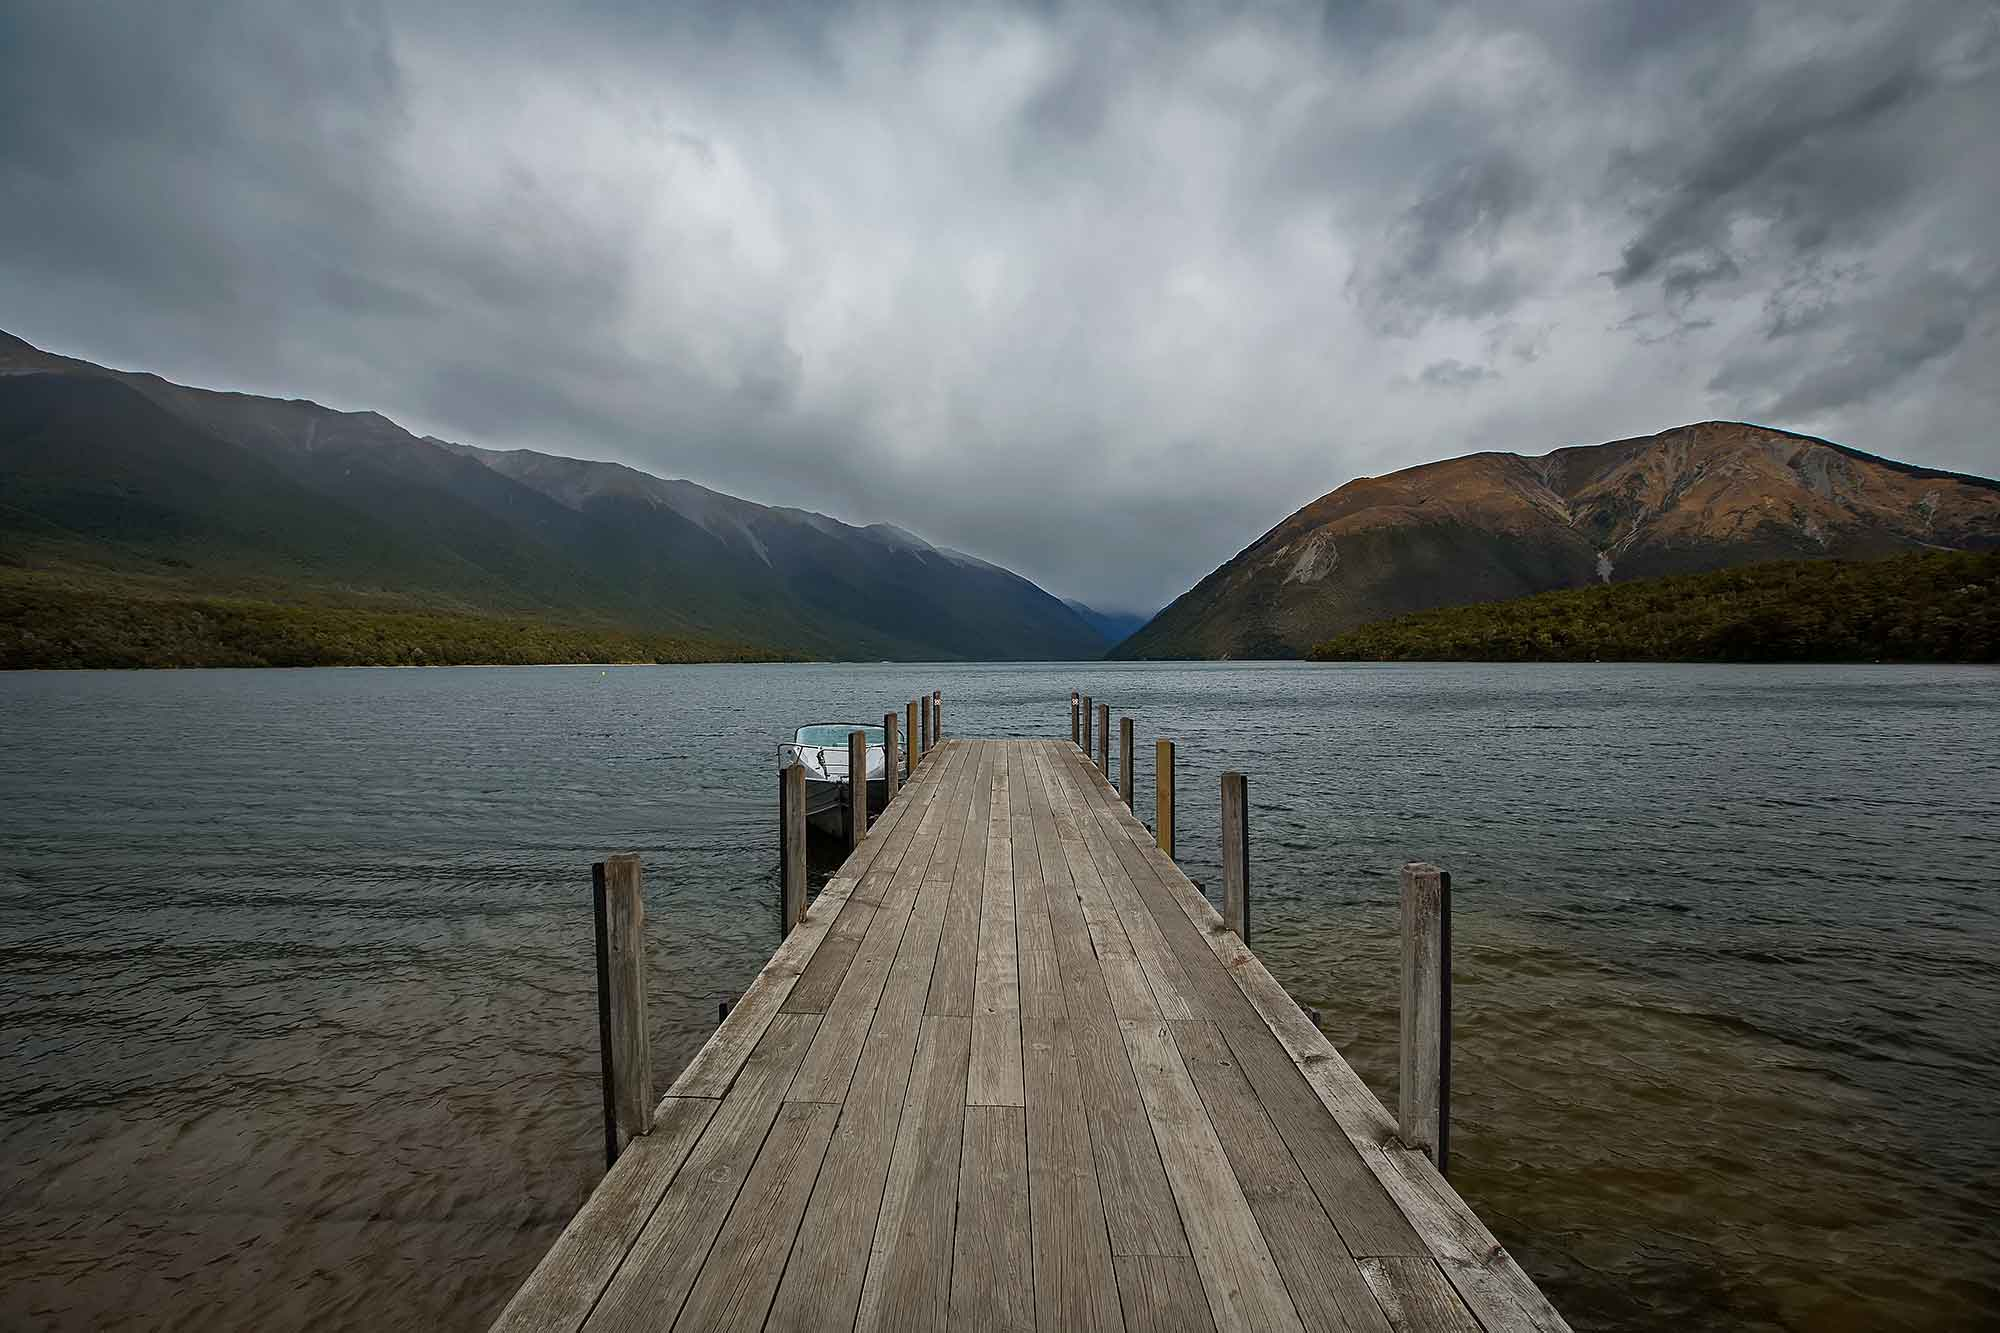 Lake Rotoiti, Nelsons Lake Park, New Zealand. © Ulli Maier & Nisa Maier